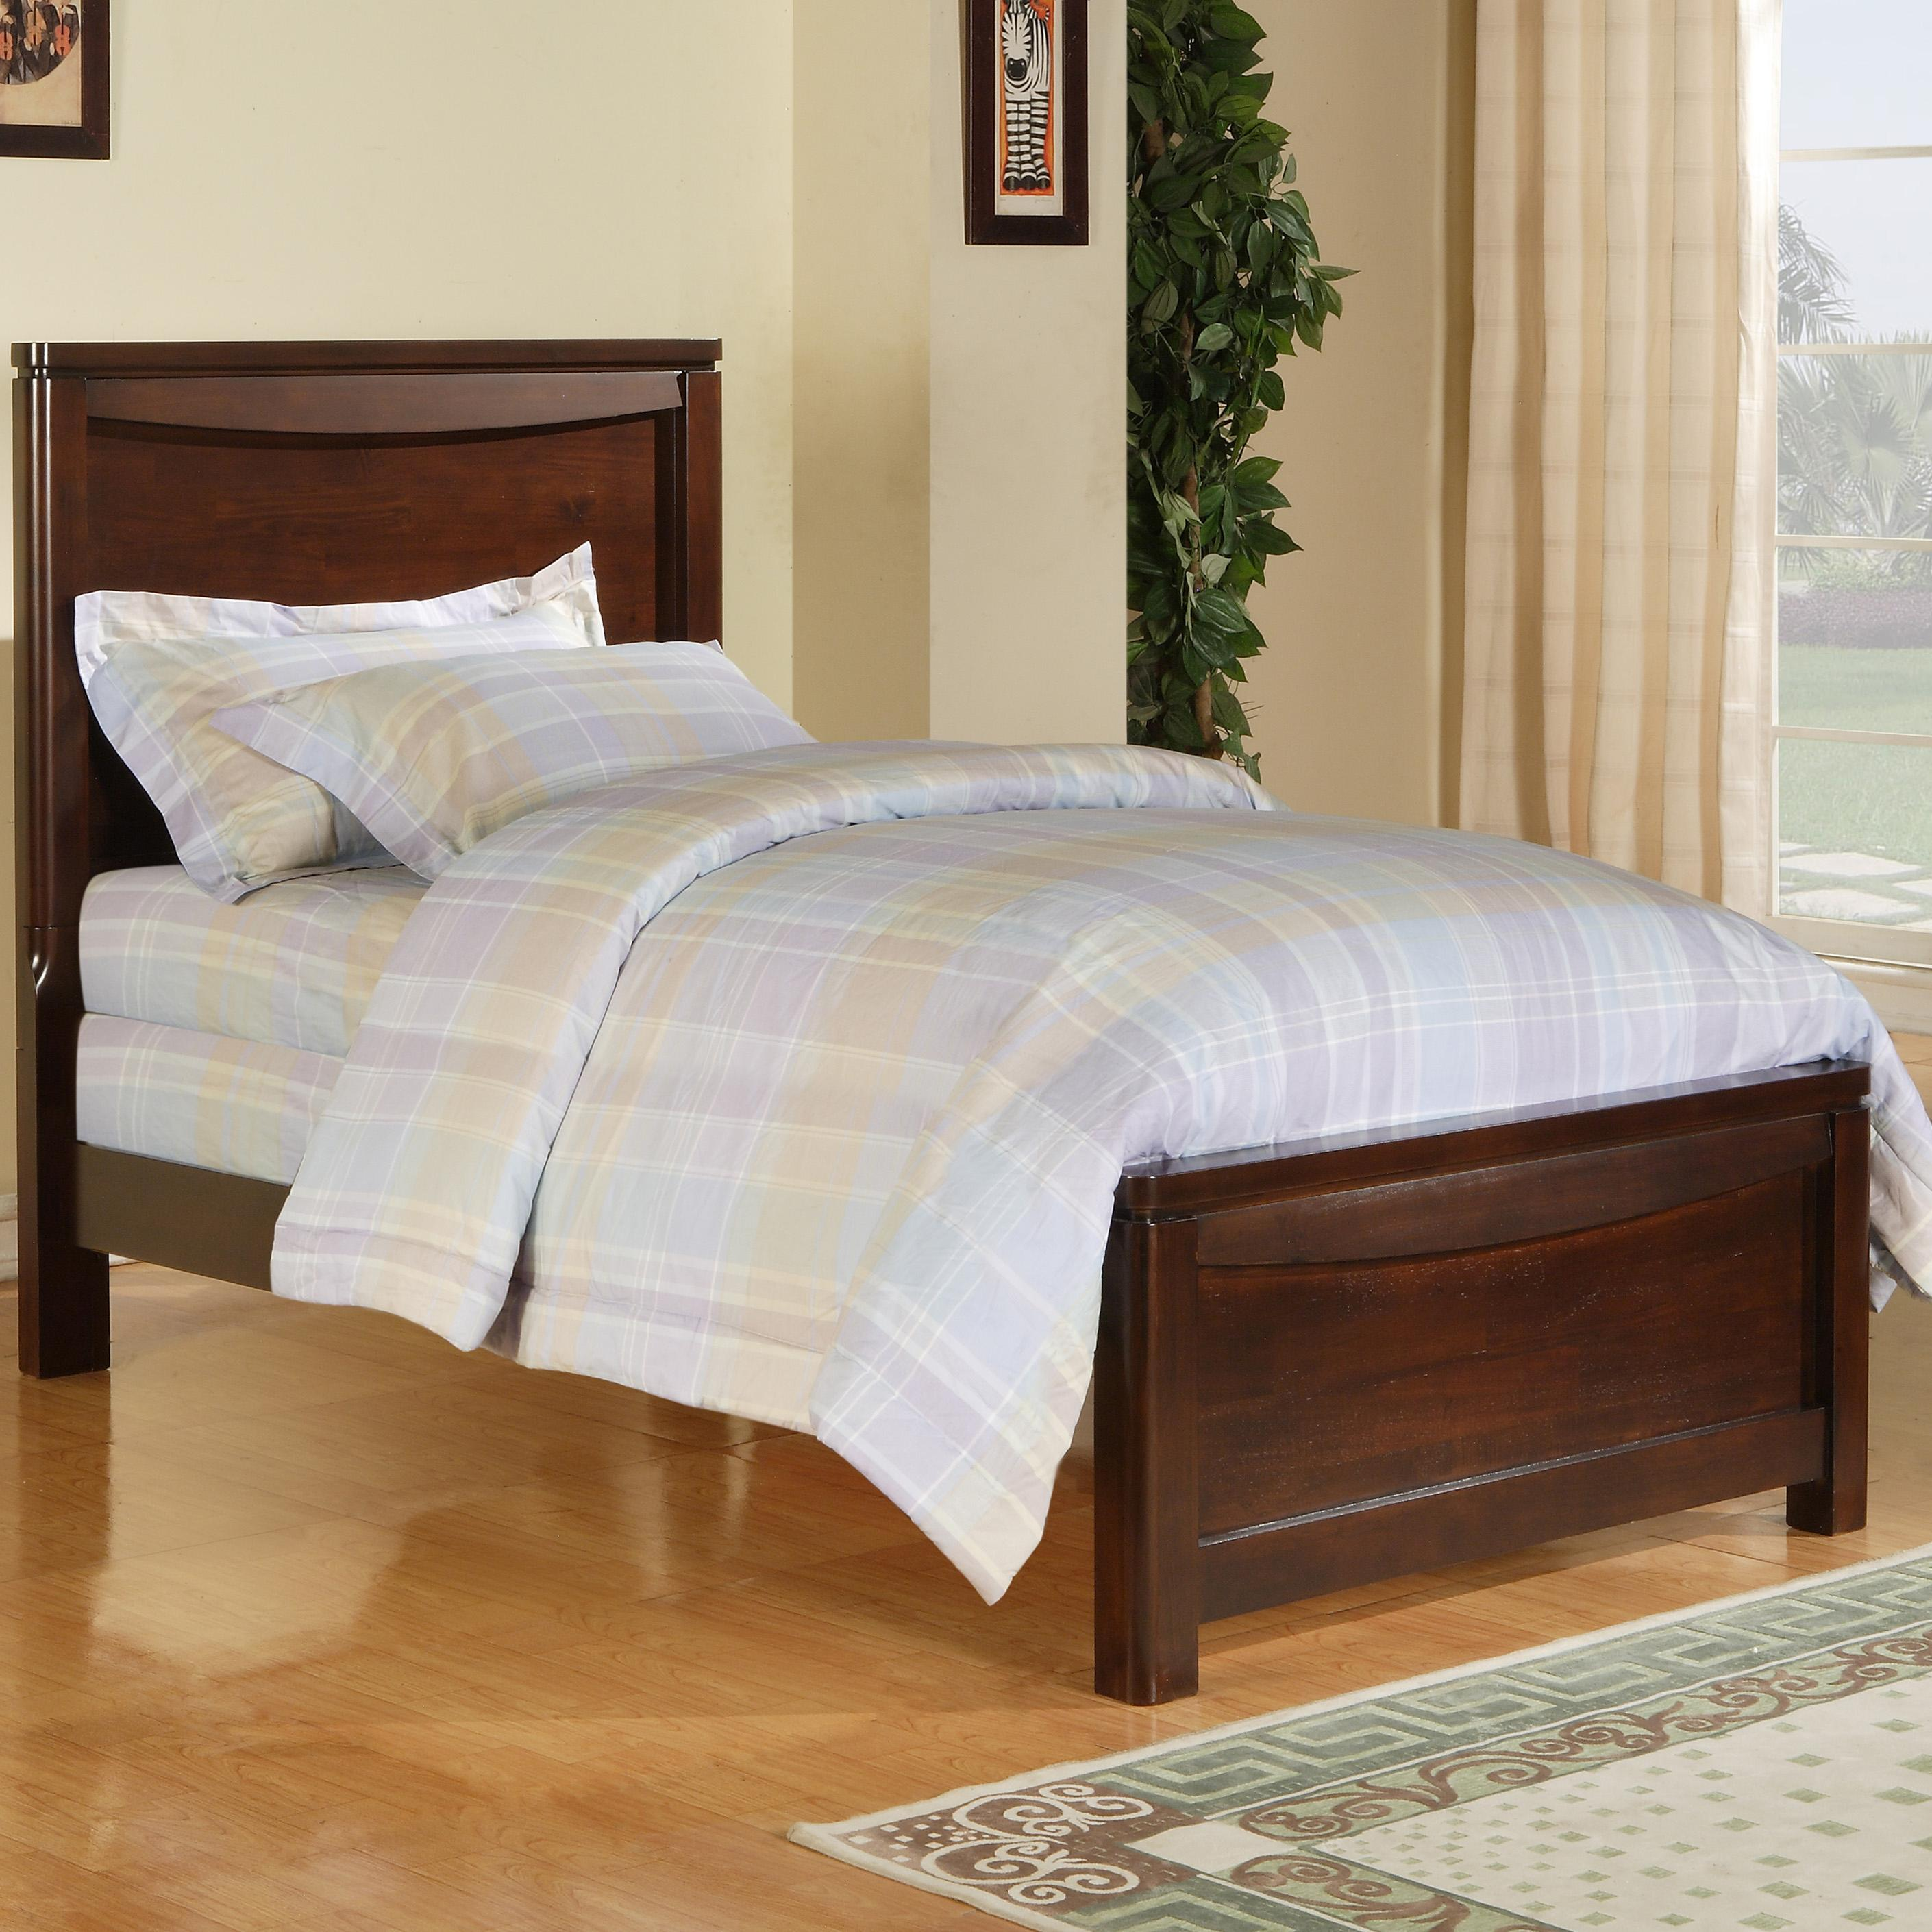 Morris Home Furnishings Granada Granada Full Panel Bed - Item Number: 2260-20H+20F+19R